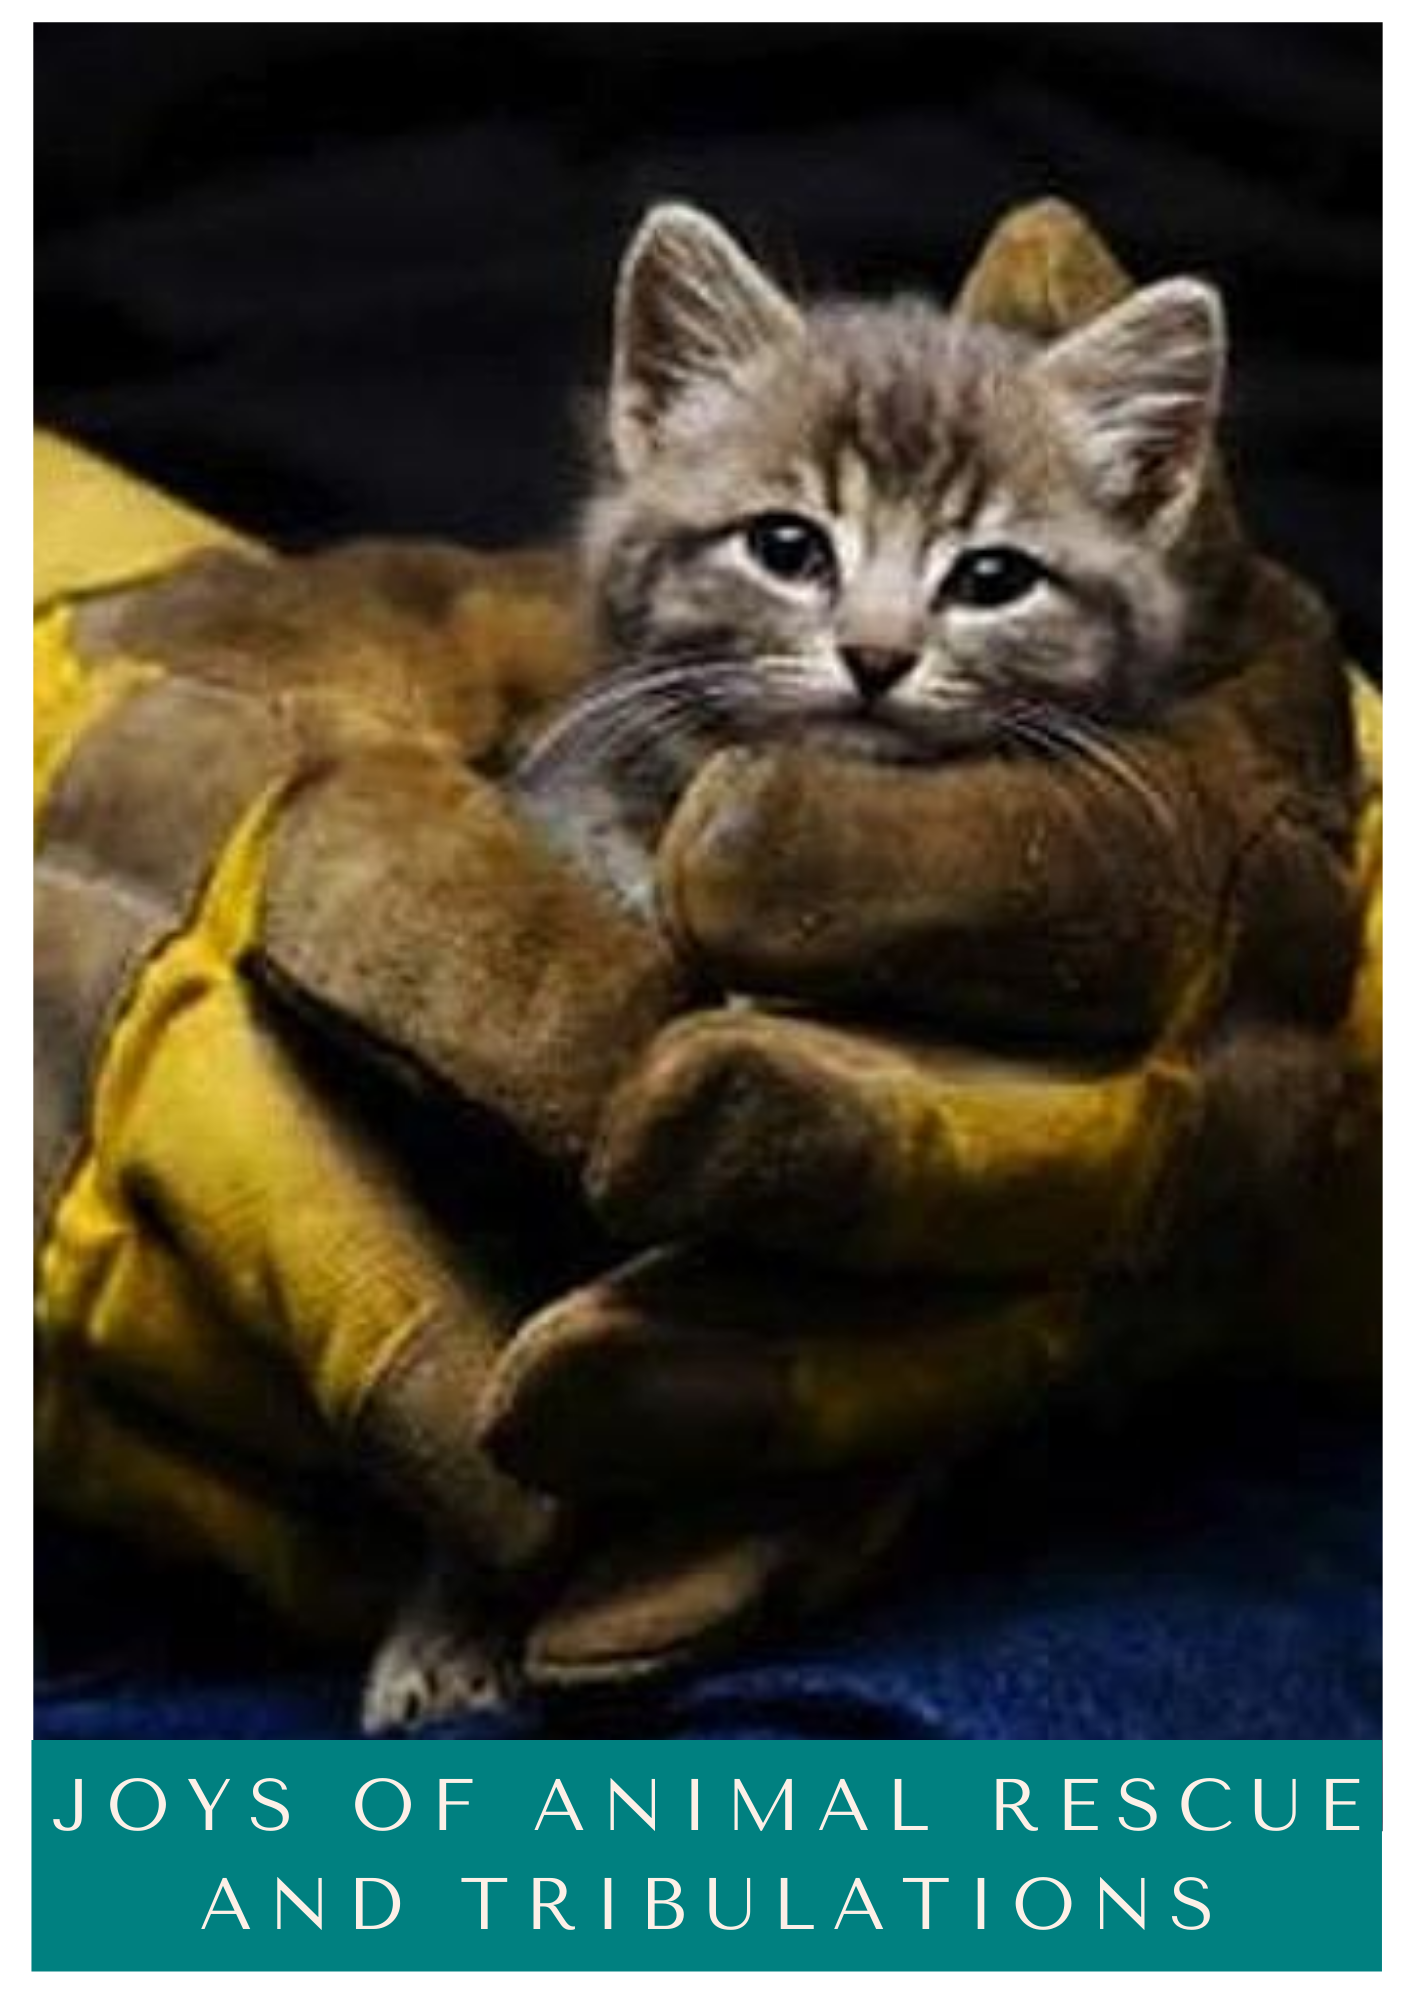 Click for Joys of Animal Rescue and Tribulations